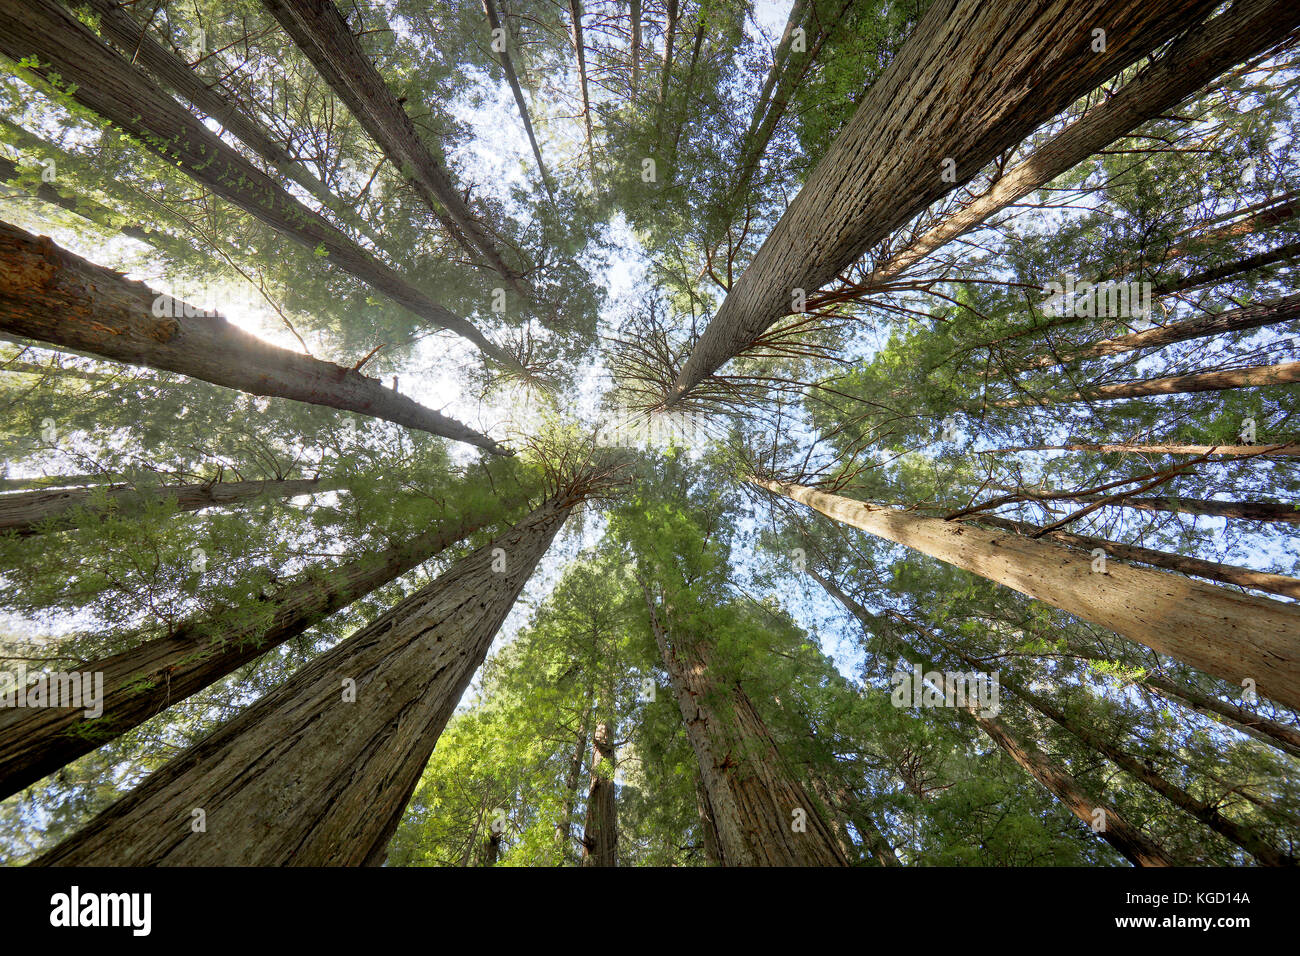 Redwood Giants. Towering Trees photographed at the Avenue of the Giants in Northern California. This image photographed Stock Photo